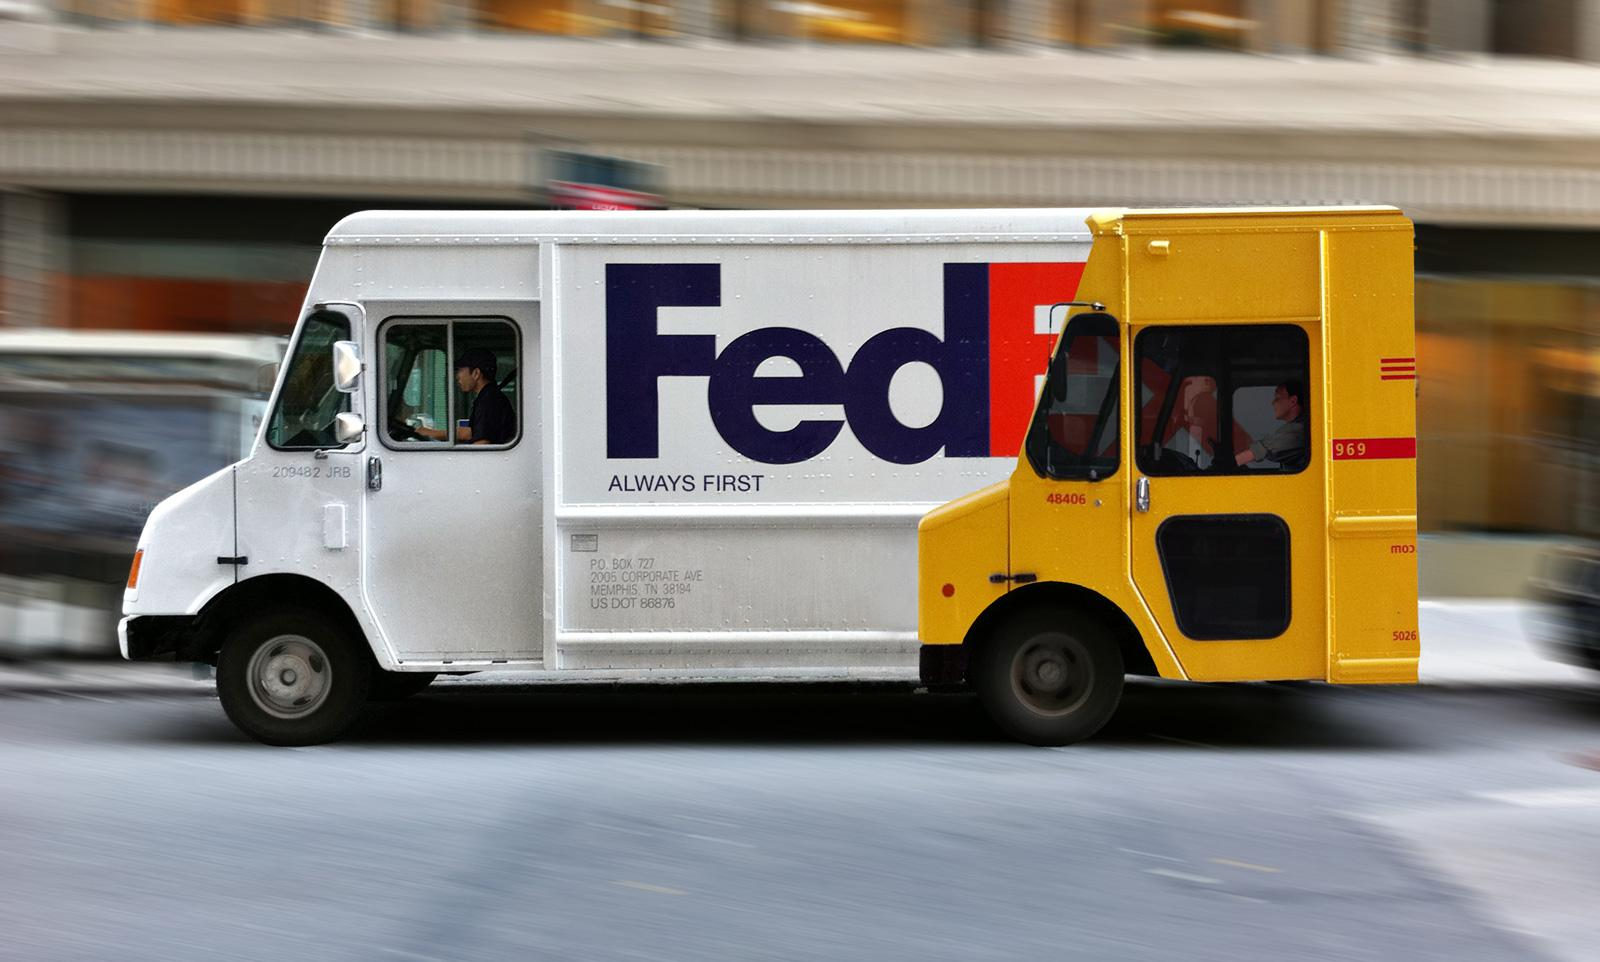 FedEx Ambient Ad -  Always first truck